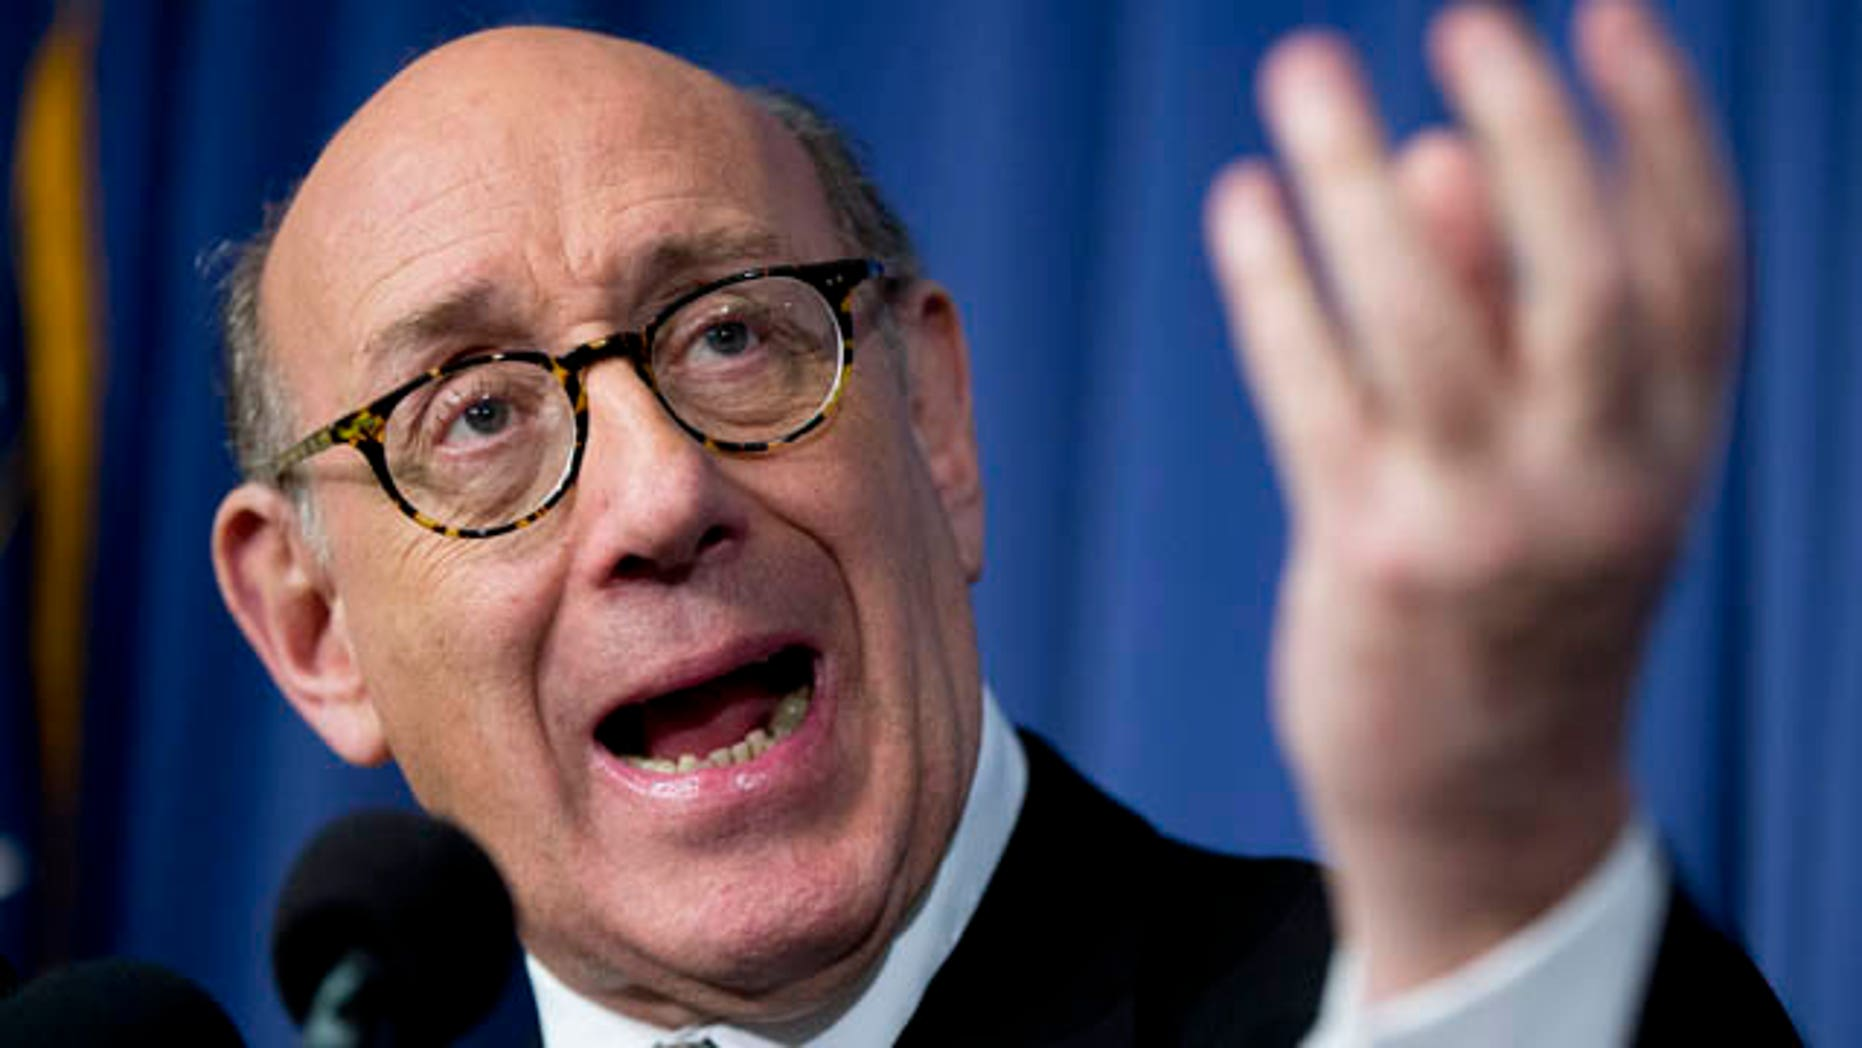 FILE - In this Monday, June 30, 2014, file photo, Kenneth Feinberg, the independent claims administrator for the General Motors Ignition Compensation Program, announces the details of the program during a news conference at the National Press Club in Washington. (AP Photo/Manuel Balce Ceneta)